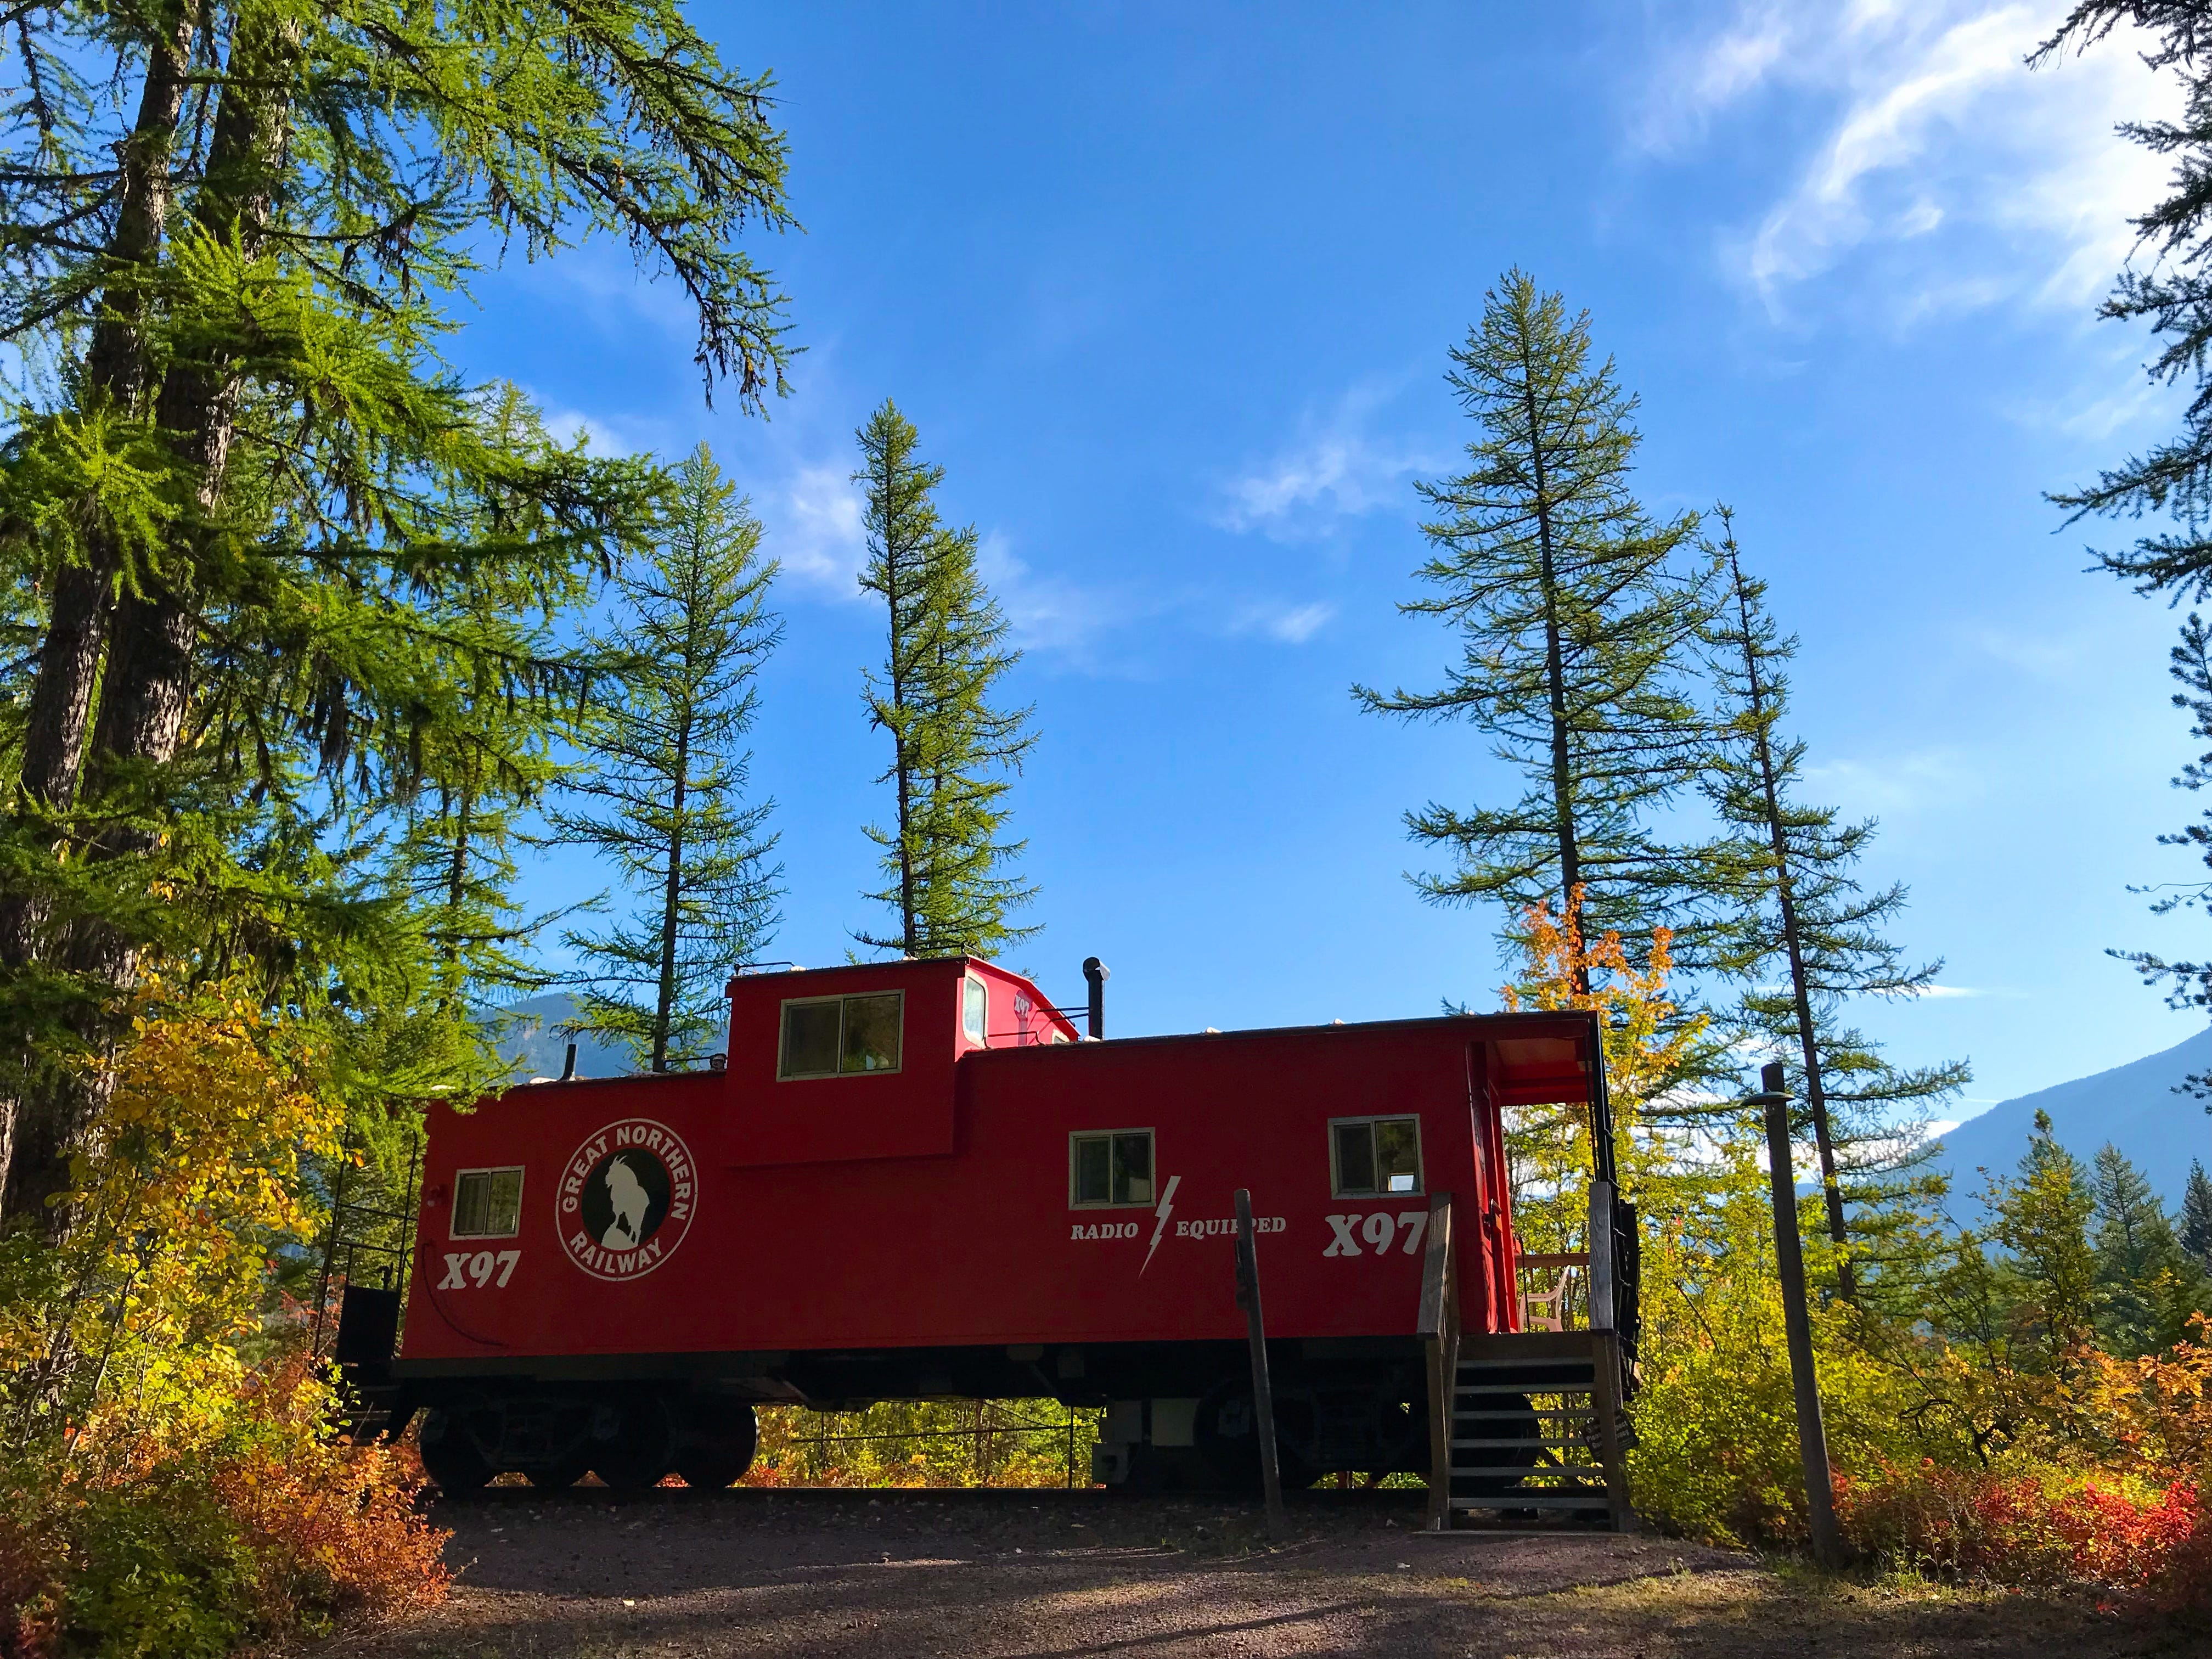 A caboose at the Izaak Walton Inn is set among fall colors